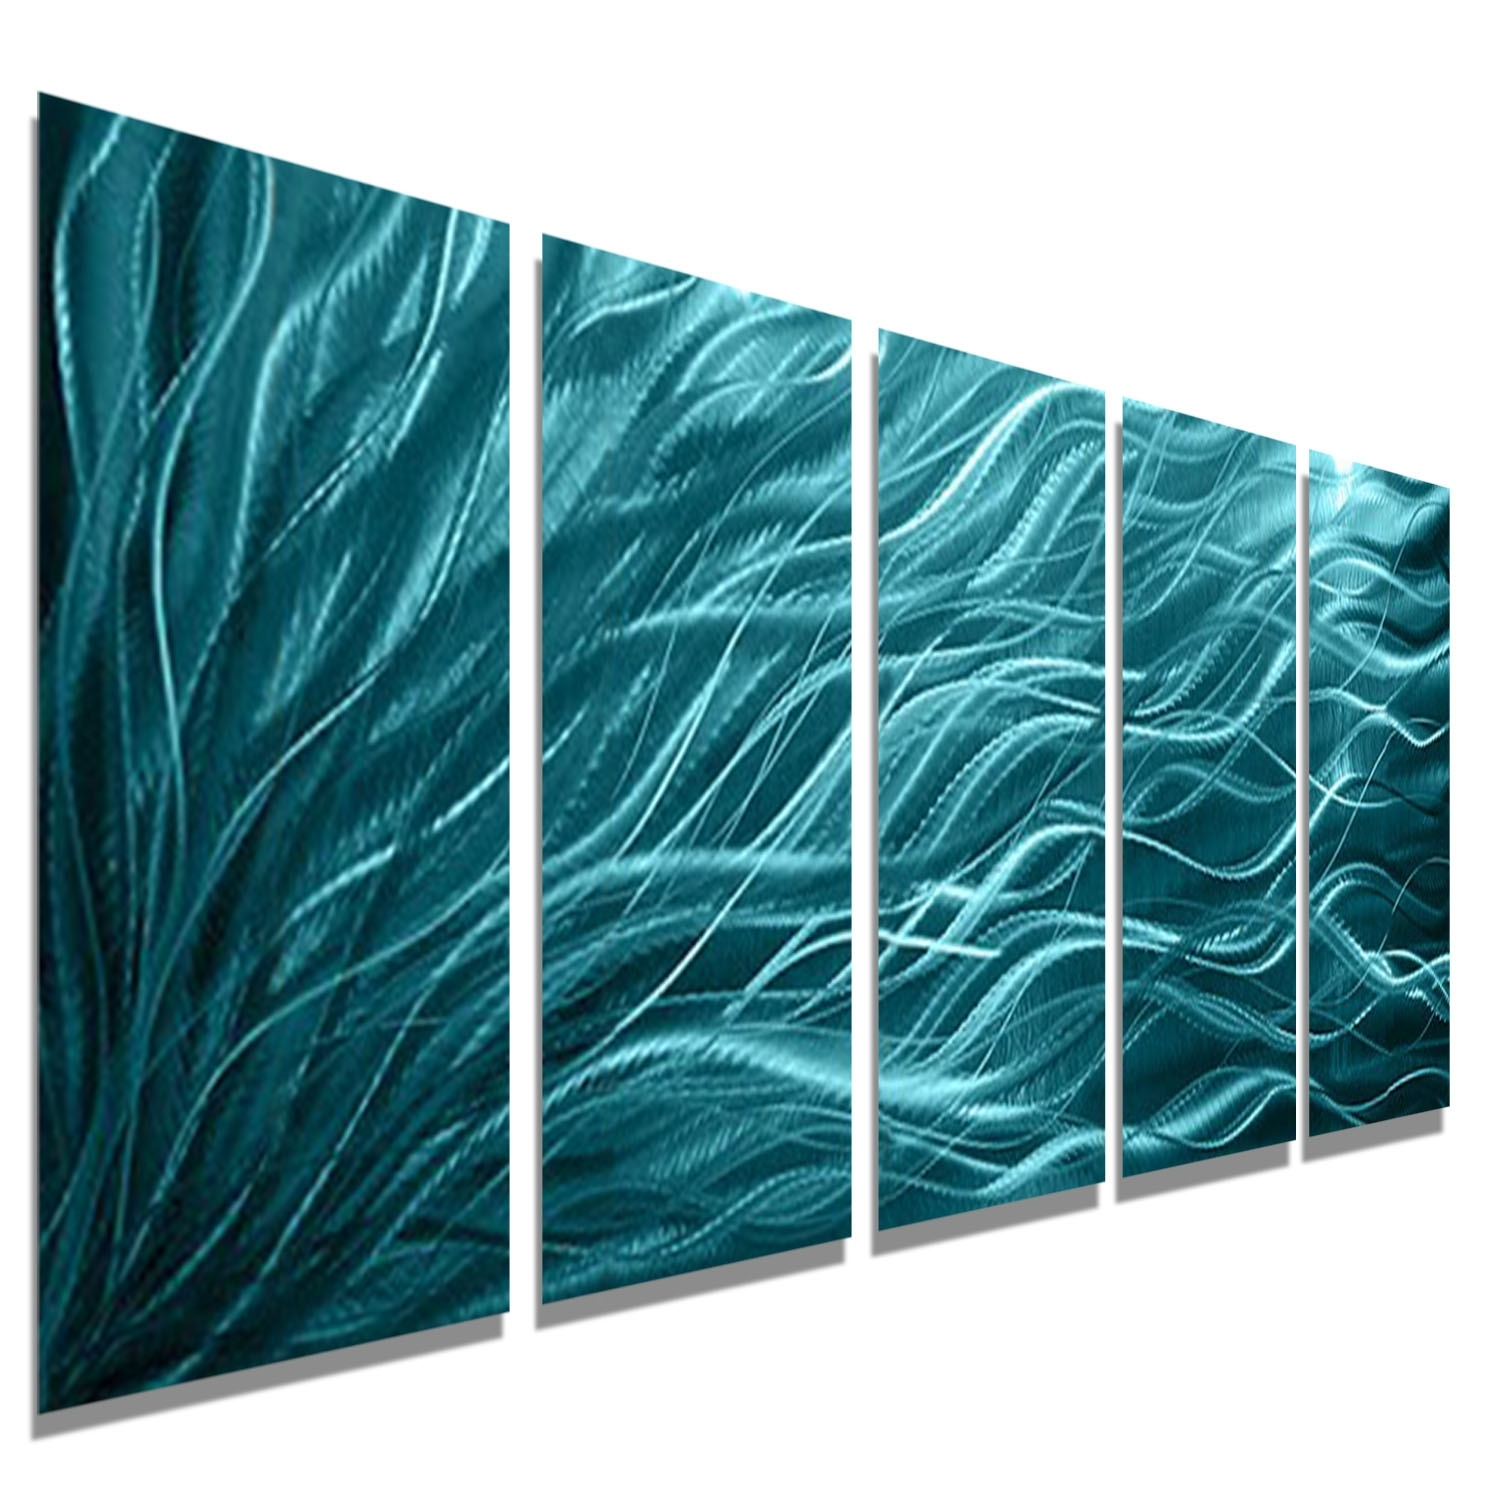 Aqua Sea Grass – Aqua Blue Metal Wall Art – 5 Panel Wall Décor Inside Latest Sea Glass Wall Art (View 1 of 15)